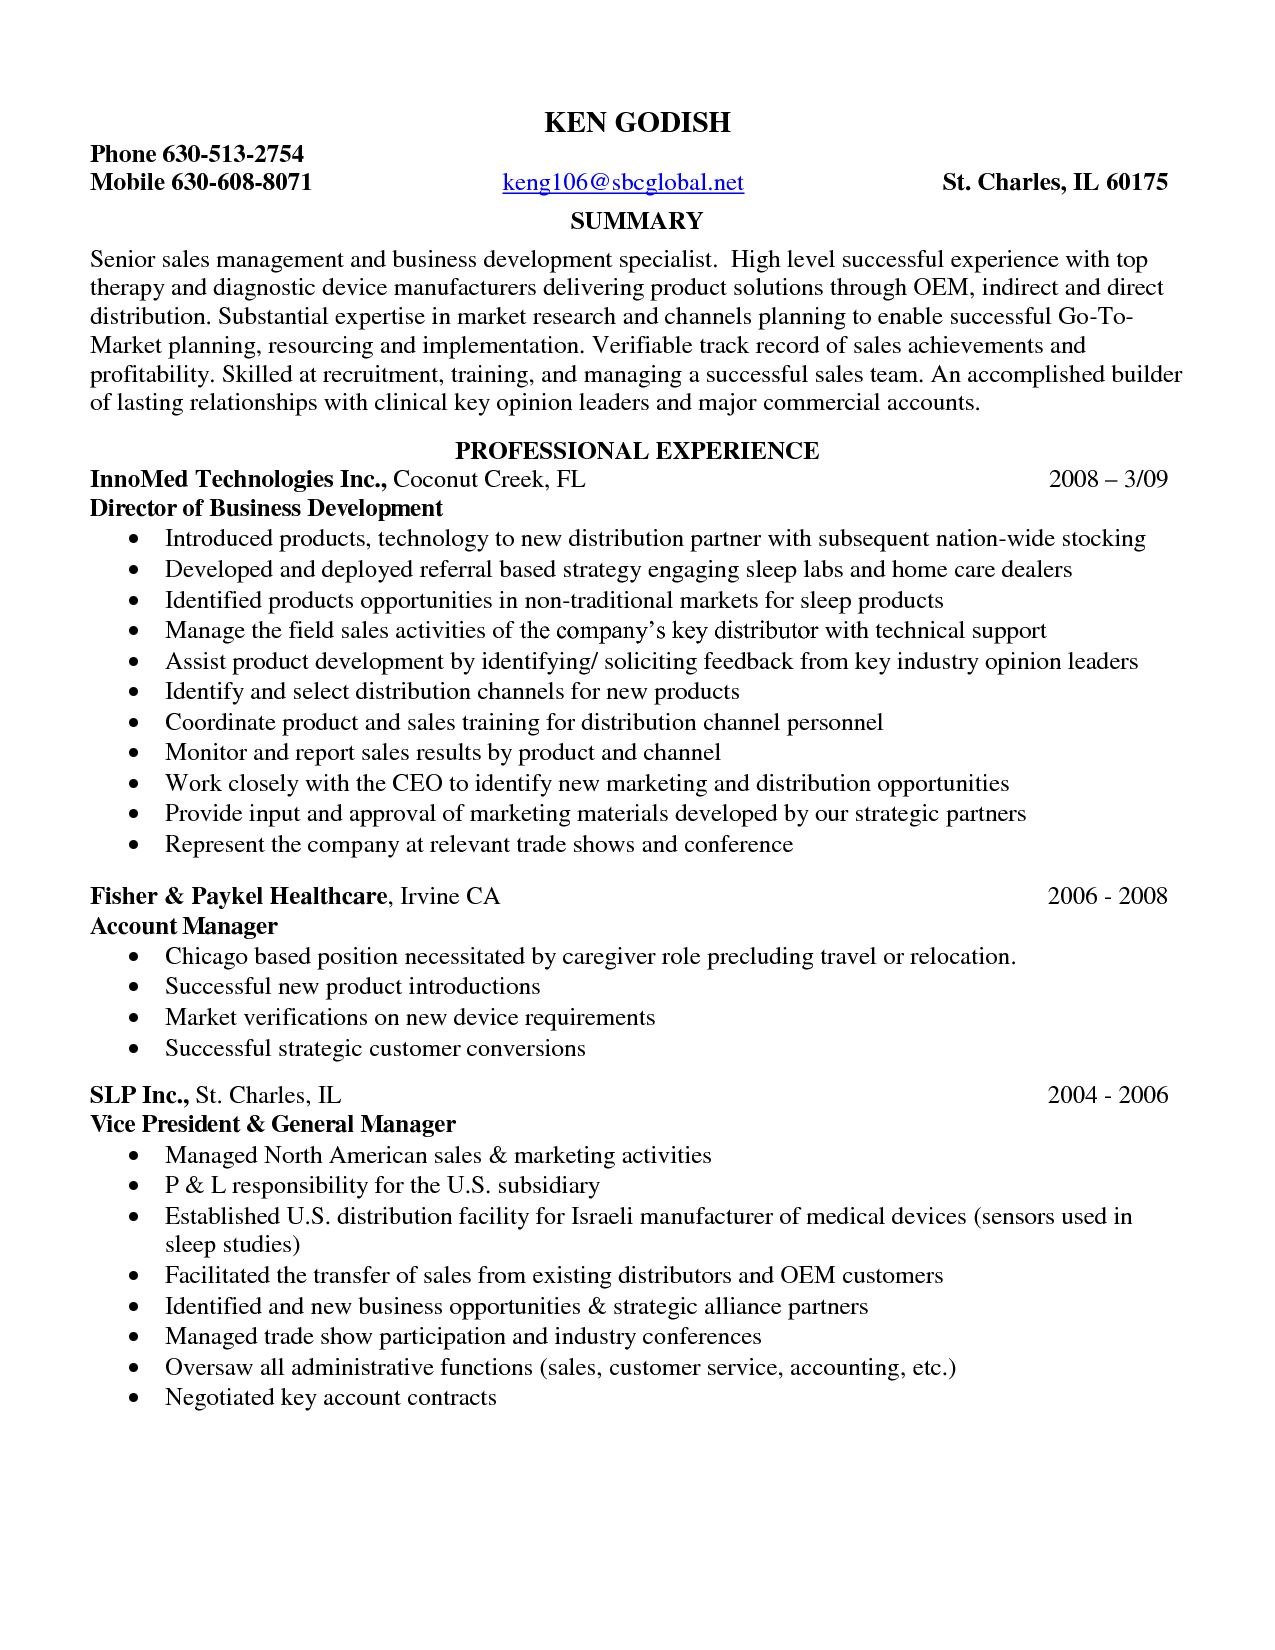 Sample Resume Entry Level Pharmaceutical Sales Sample Resume Entry Levelu2026